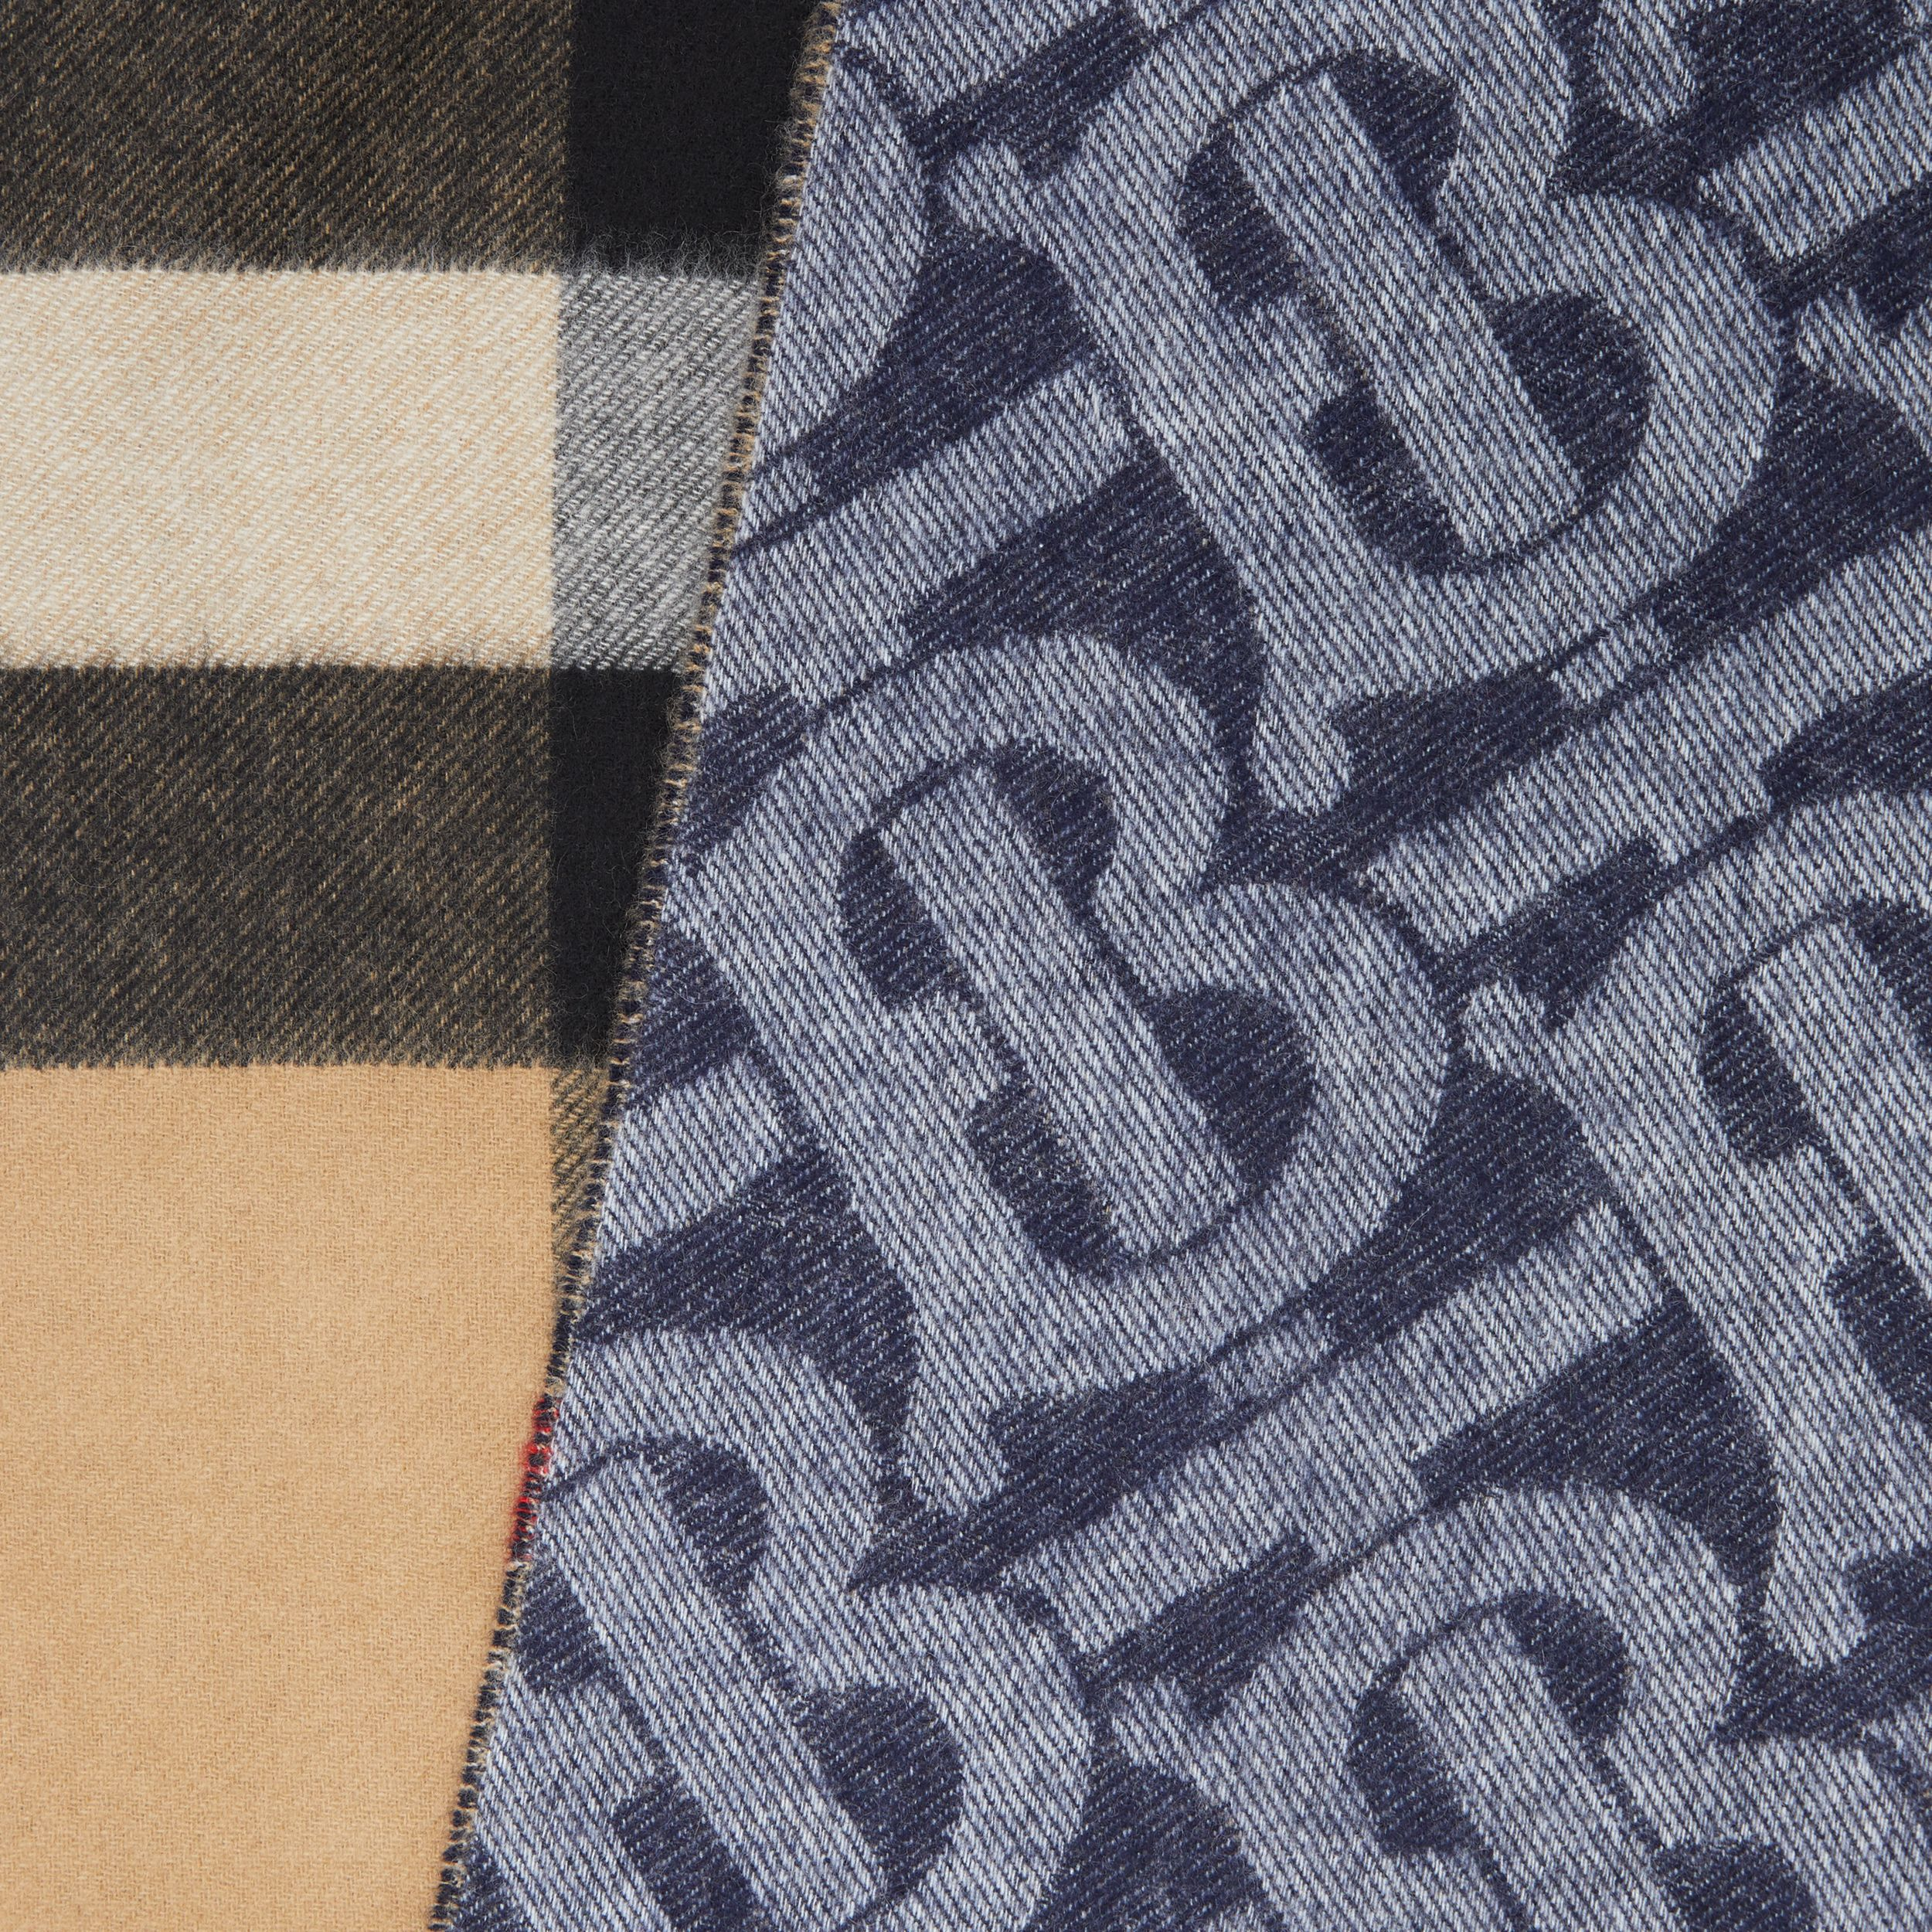 Reversible Check and Monogram Cashmere Scarf in Indigo | Burberry Australia - 2